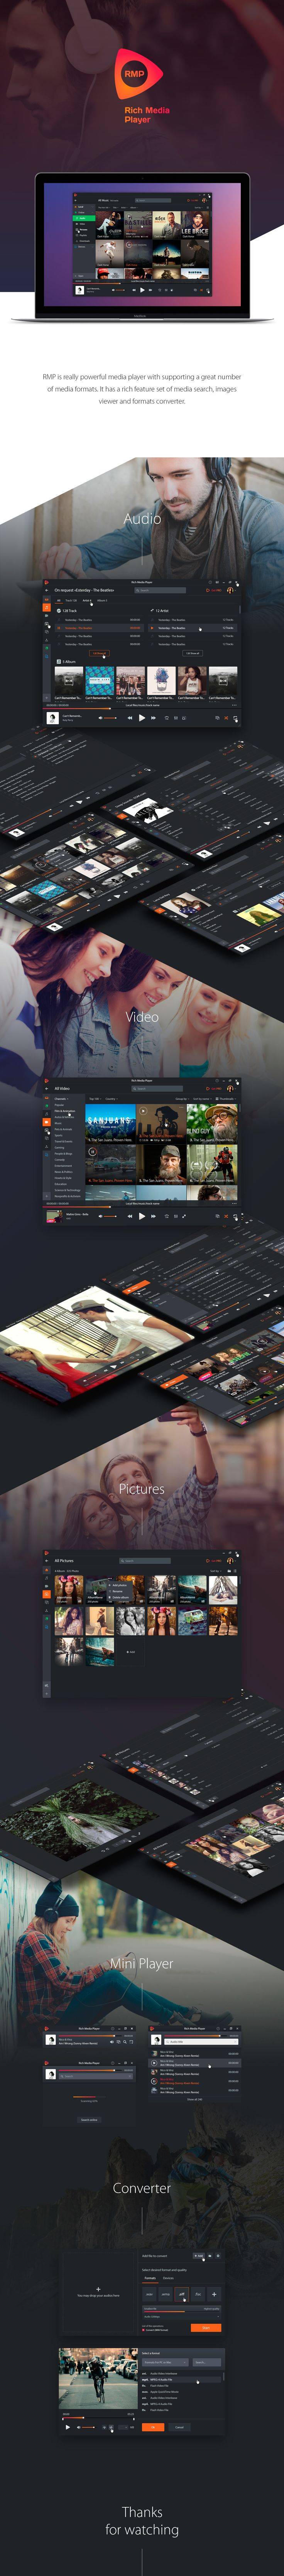 #Rich #Media #Player on #Behance #web #design